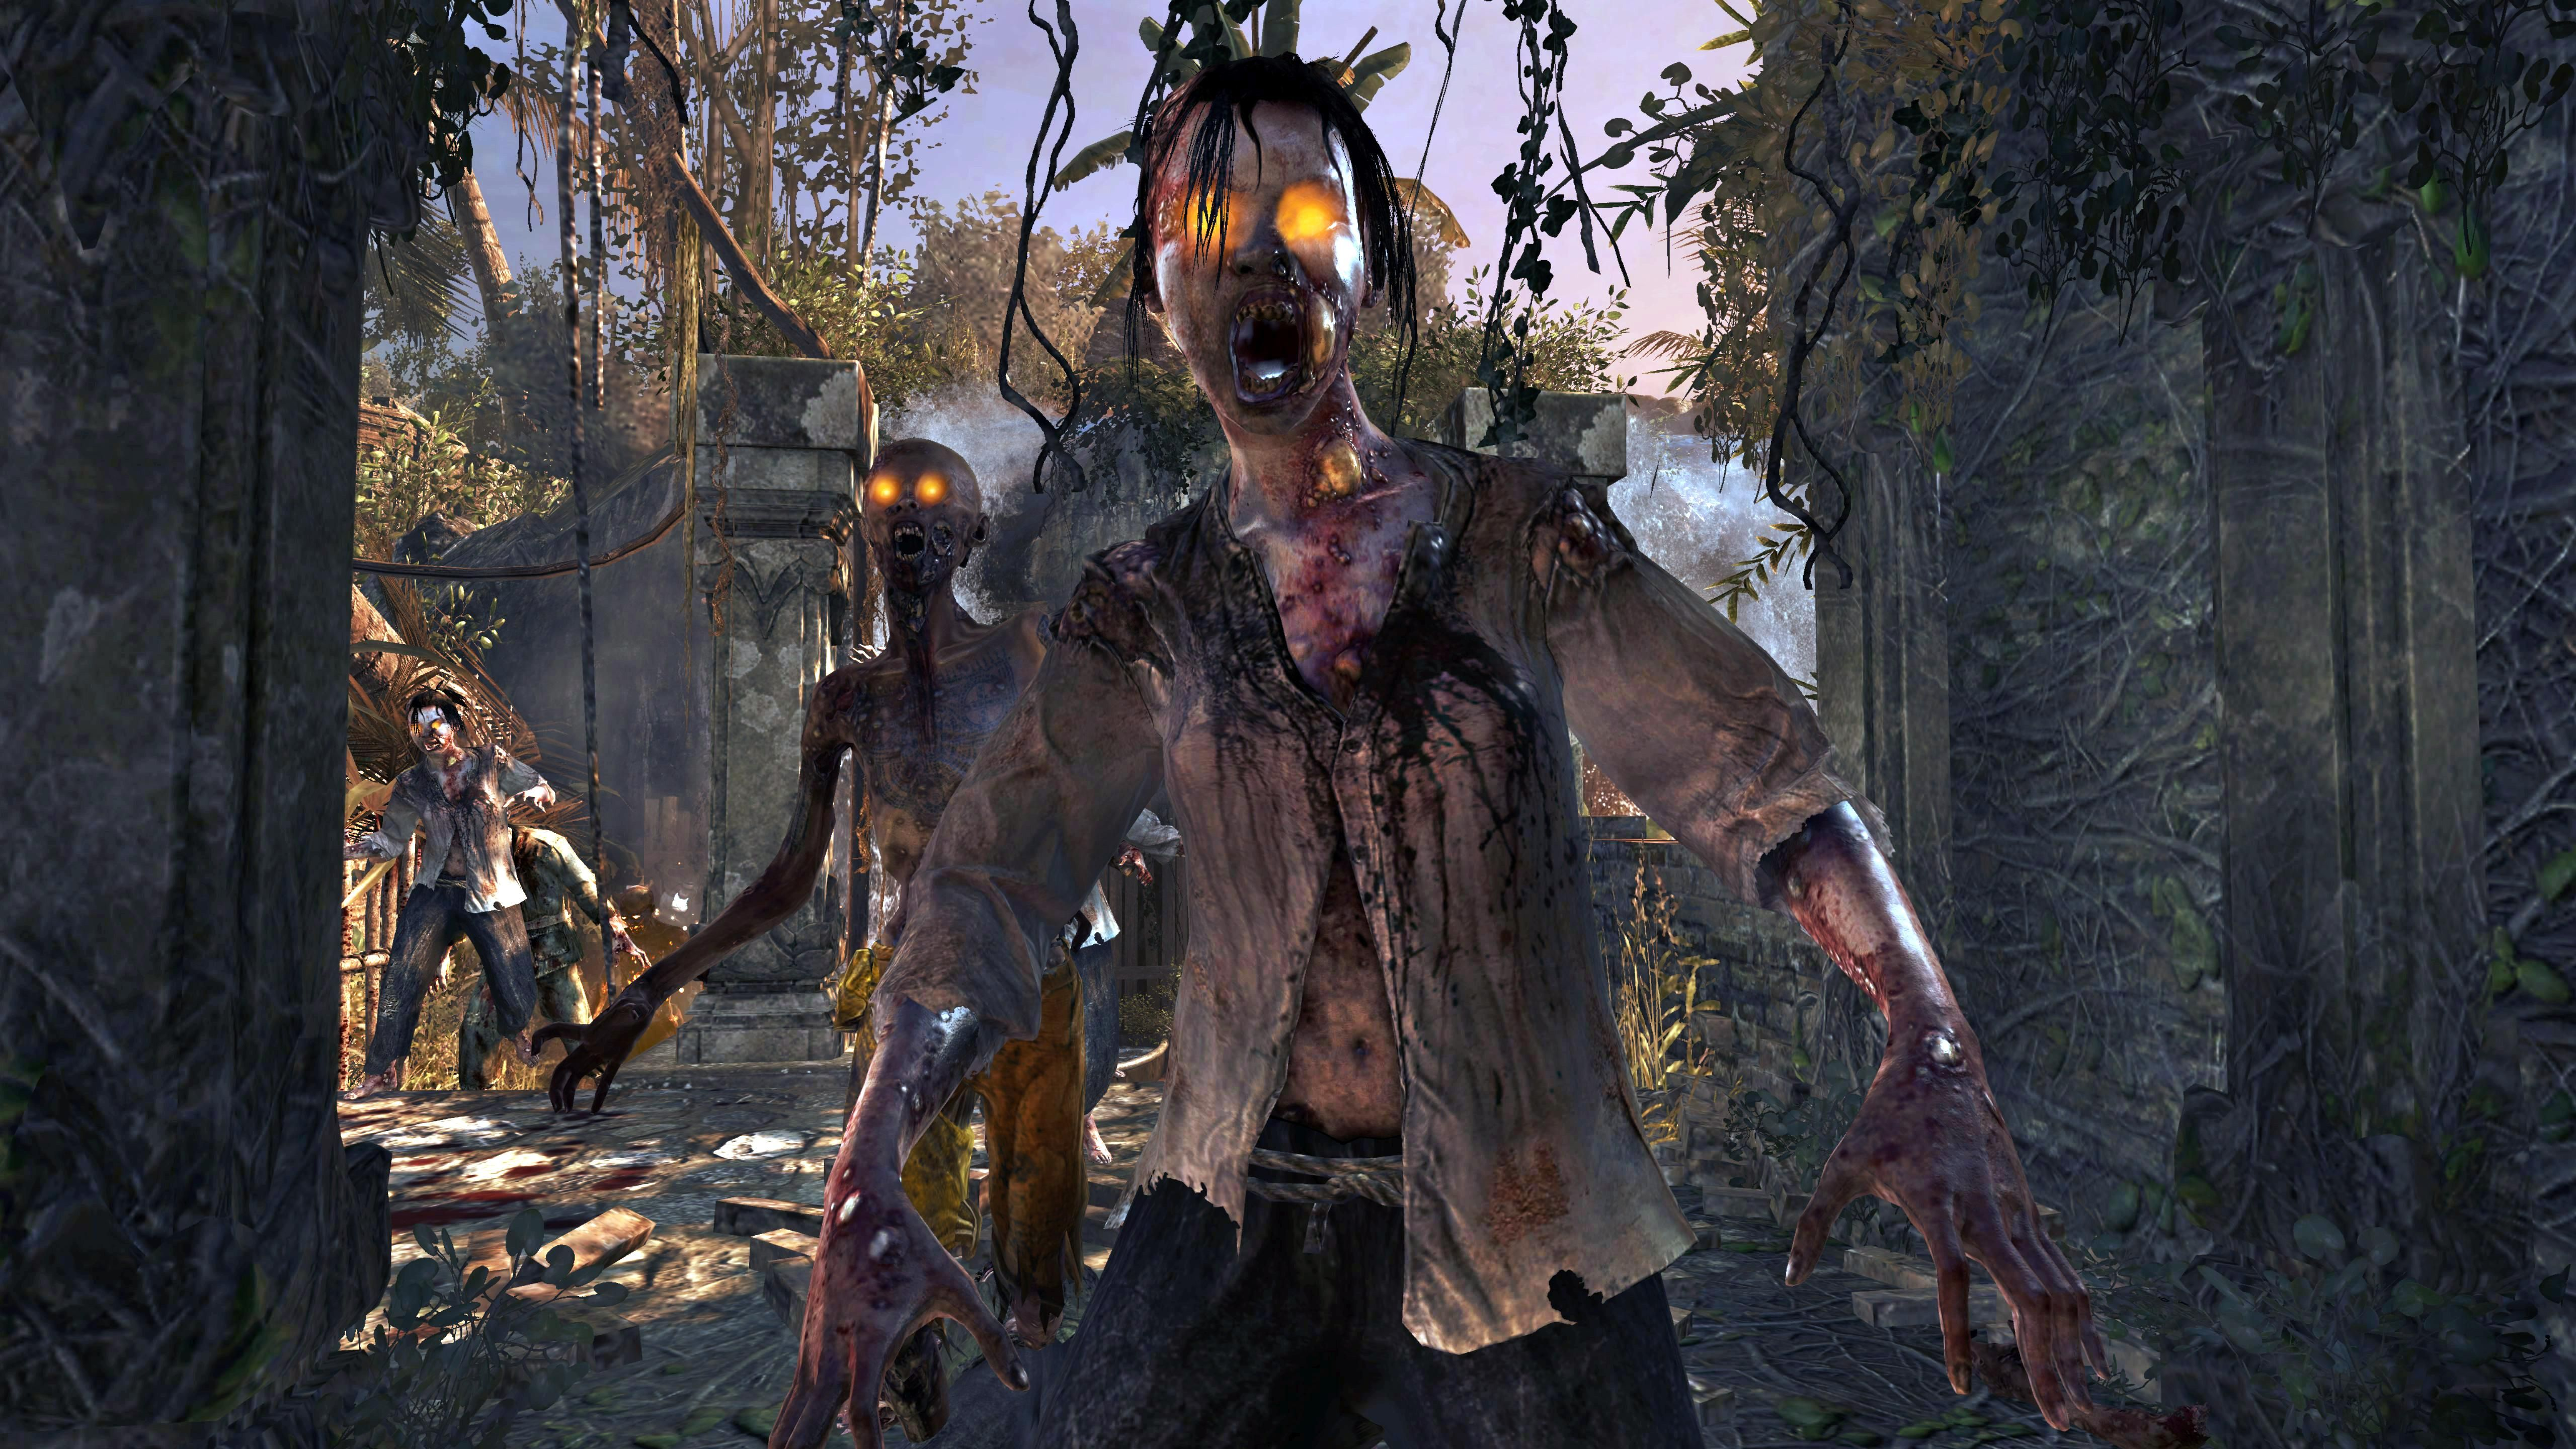 cod black ops maps | Call Of Duty Black Ops 2 Zombies ... on assassin's creed 2 zombies maps, call duty world at war zombies, cod2 zombies maps, call of duty black ops richtofen, call of duty ghosts minecraft skin, call of duty zombie maps names, call of duty and minecraft banner, cod bo 2 zombies maps, call of duty advanced warfare, call of duty 3 zombies maps, call of duty at war zombies, call of duty 1 zombies map, black zombies maps, call duty black ops zombies, call of duty origins map, call of duty 2015 reboot, call of duty 2018, call of duty 4 zombies maps, call of duty 2017, call of duty 4 modern warfare zombie mod,